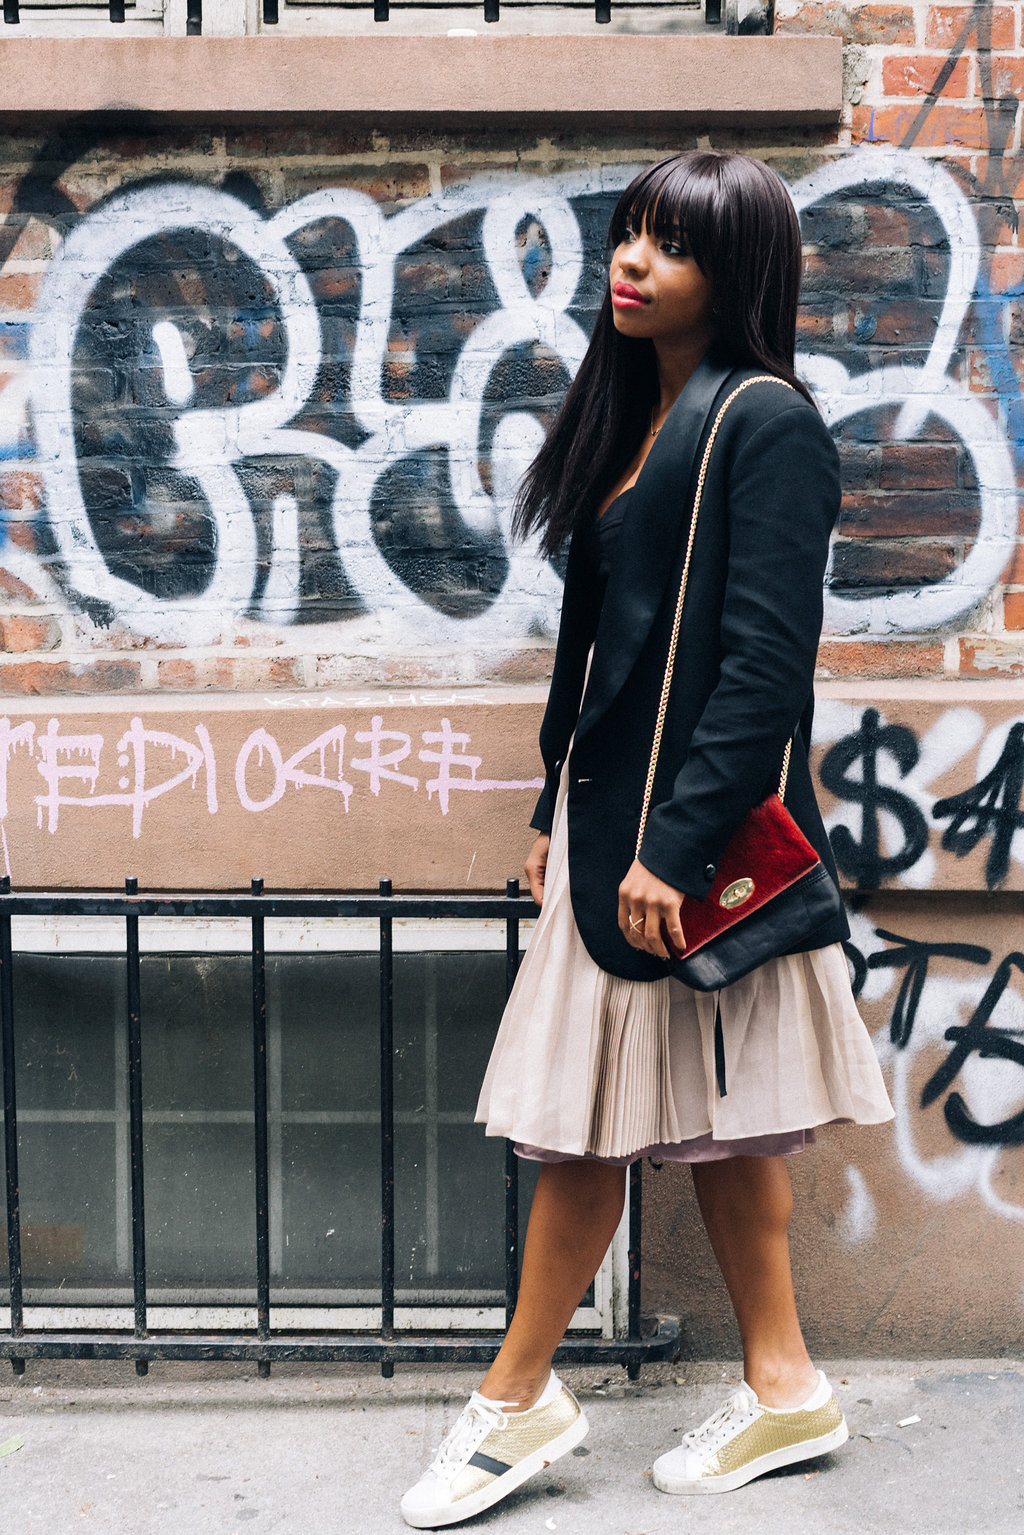 Pink Tulle Skirt and Black Blazer